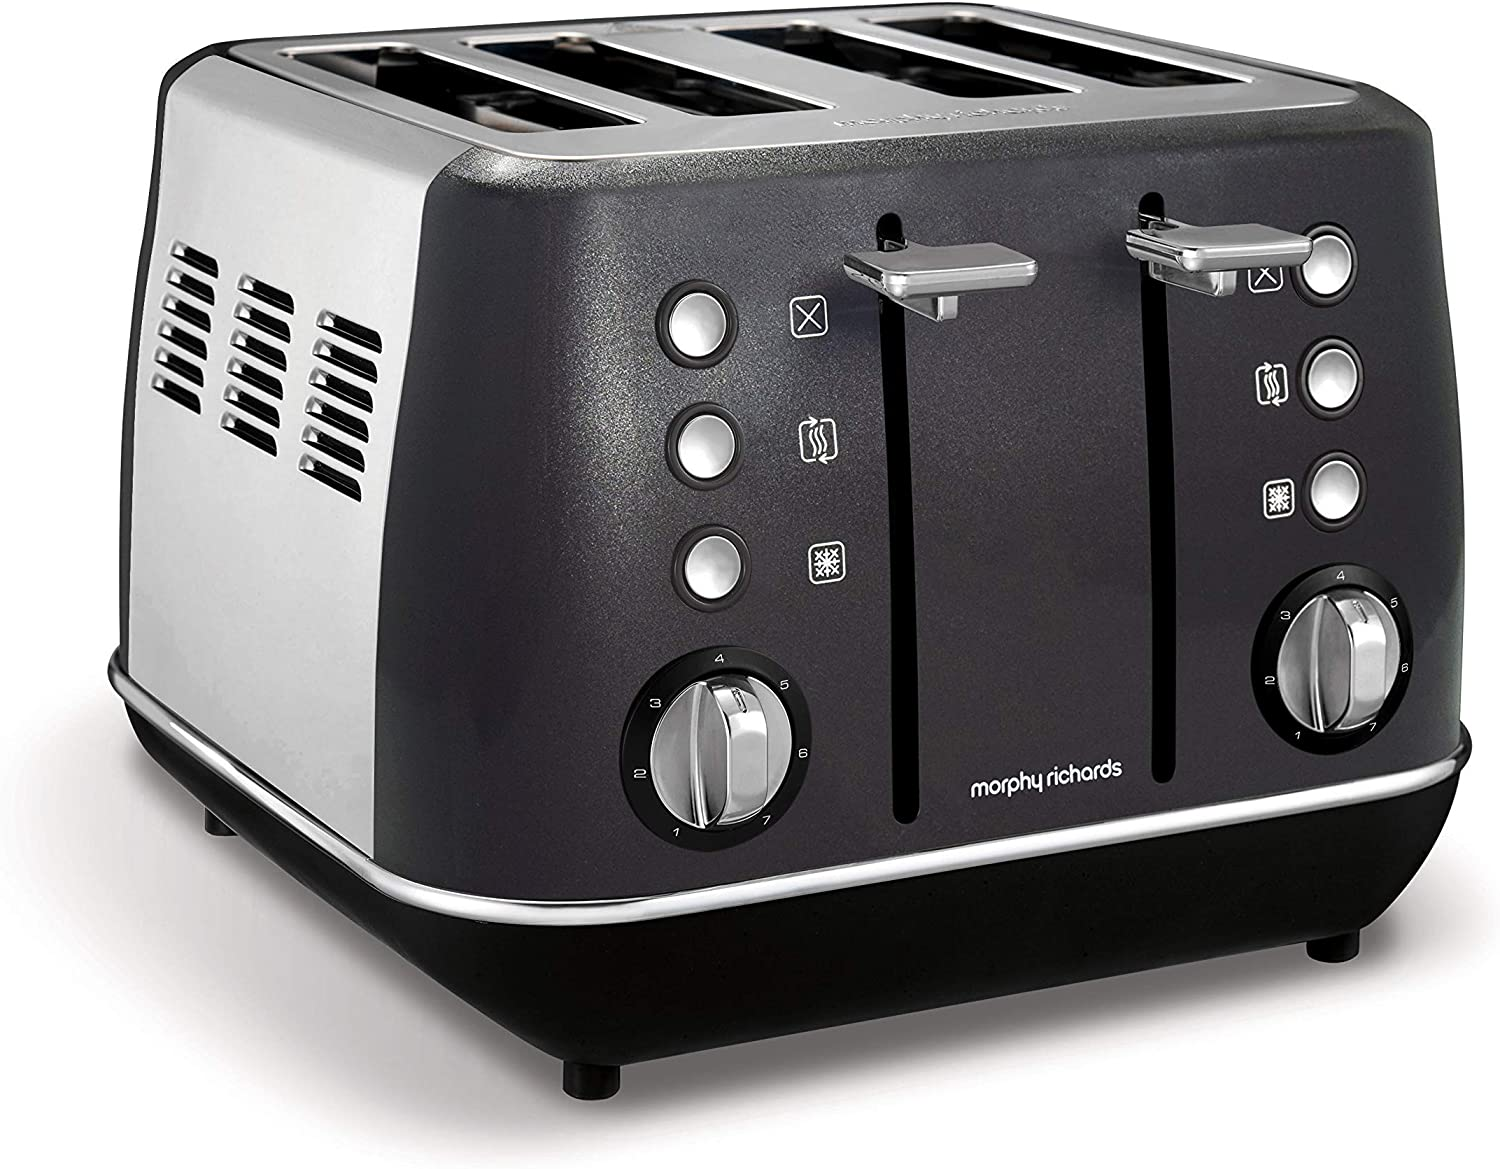 Morphy Richards Evoke 4 Slice Toaster